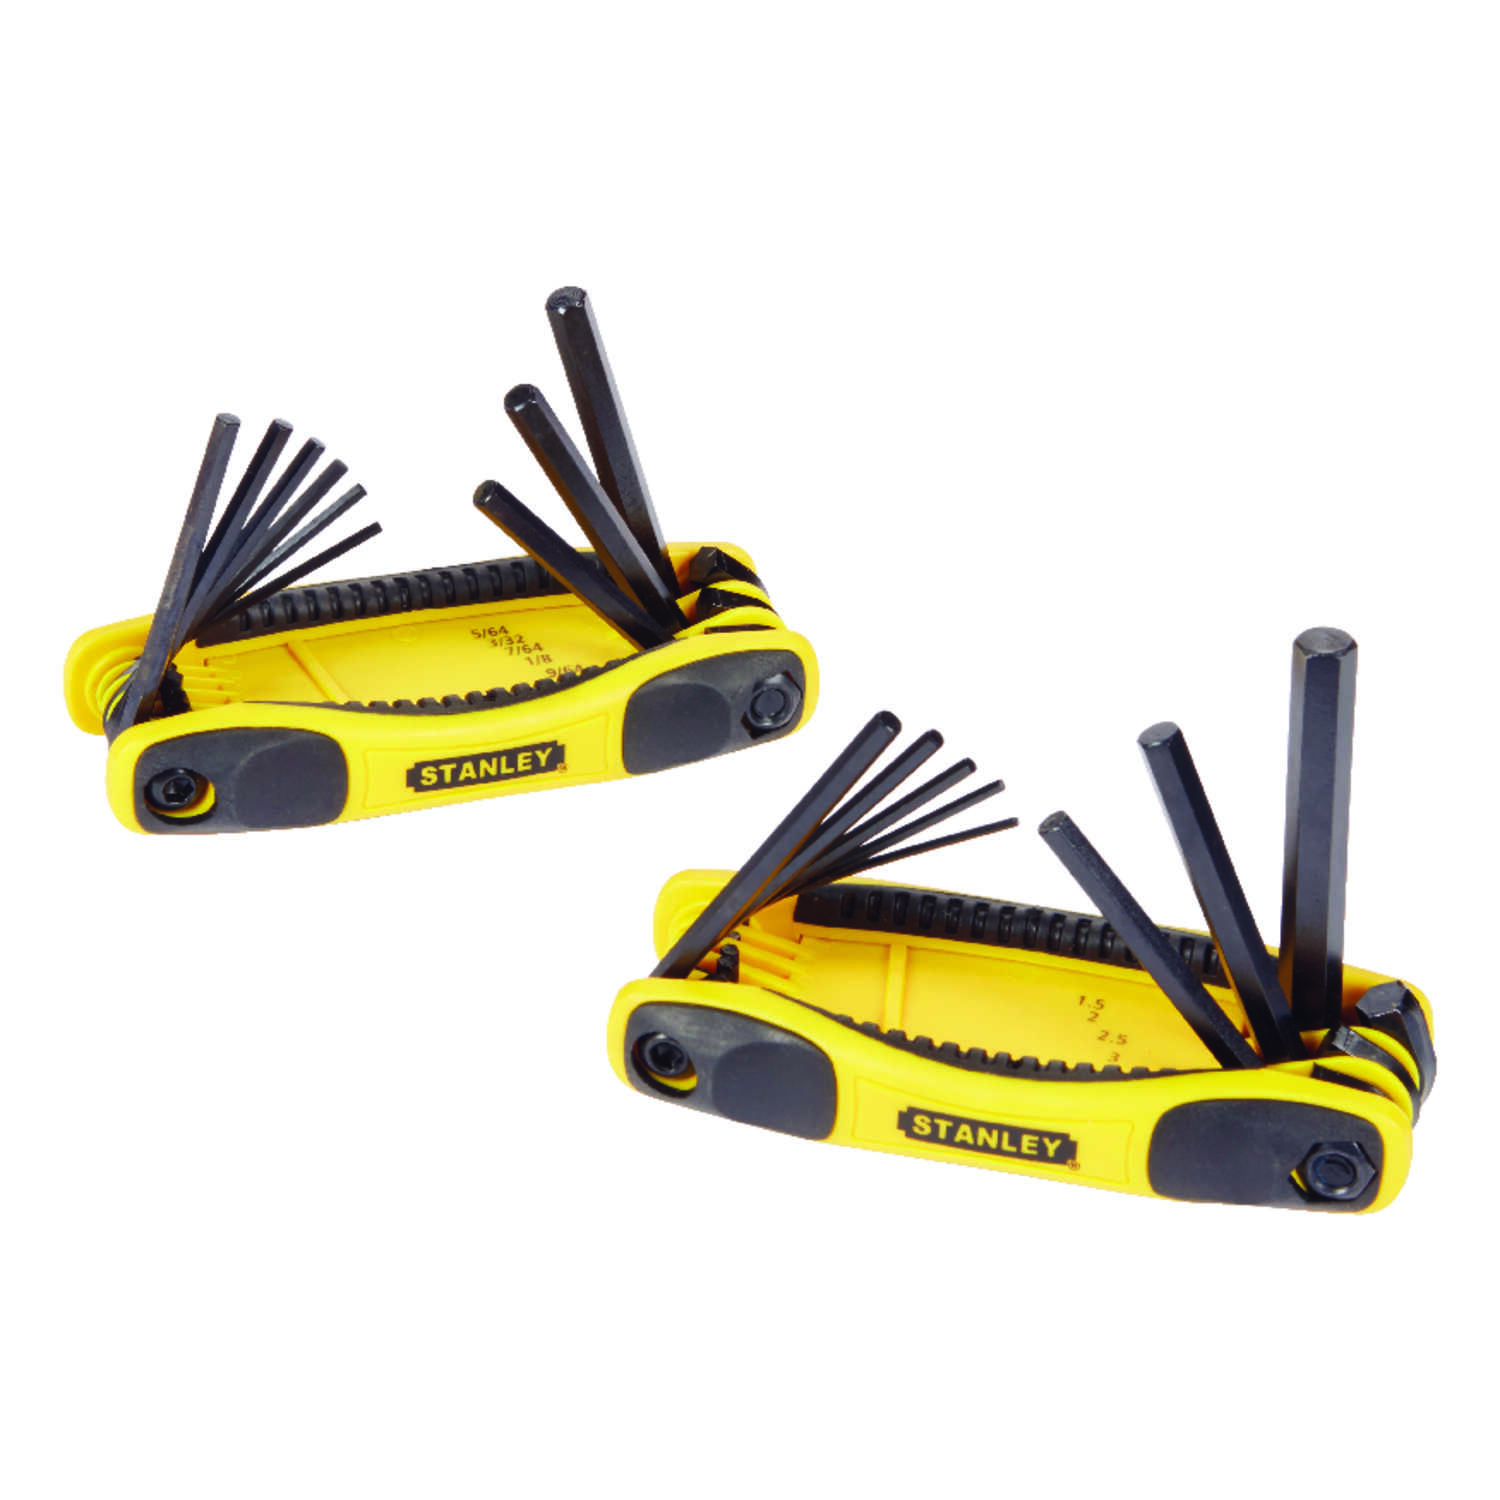 Stanley  Multi-Size  Metric and SAE  Fold-Up  Folding Locking Hex Key Set  6.7 in. 17